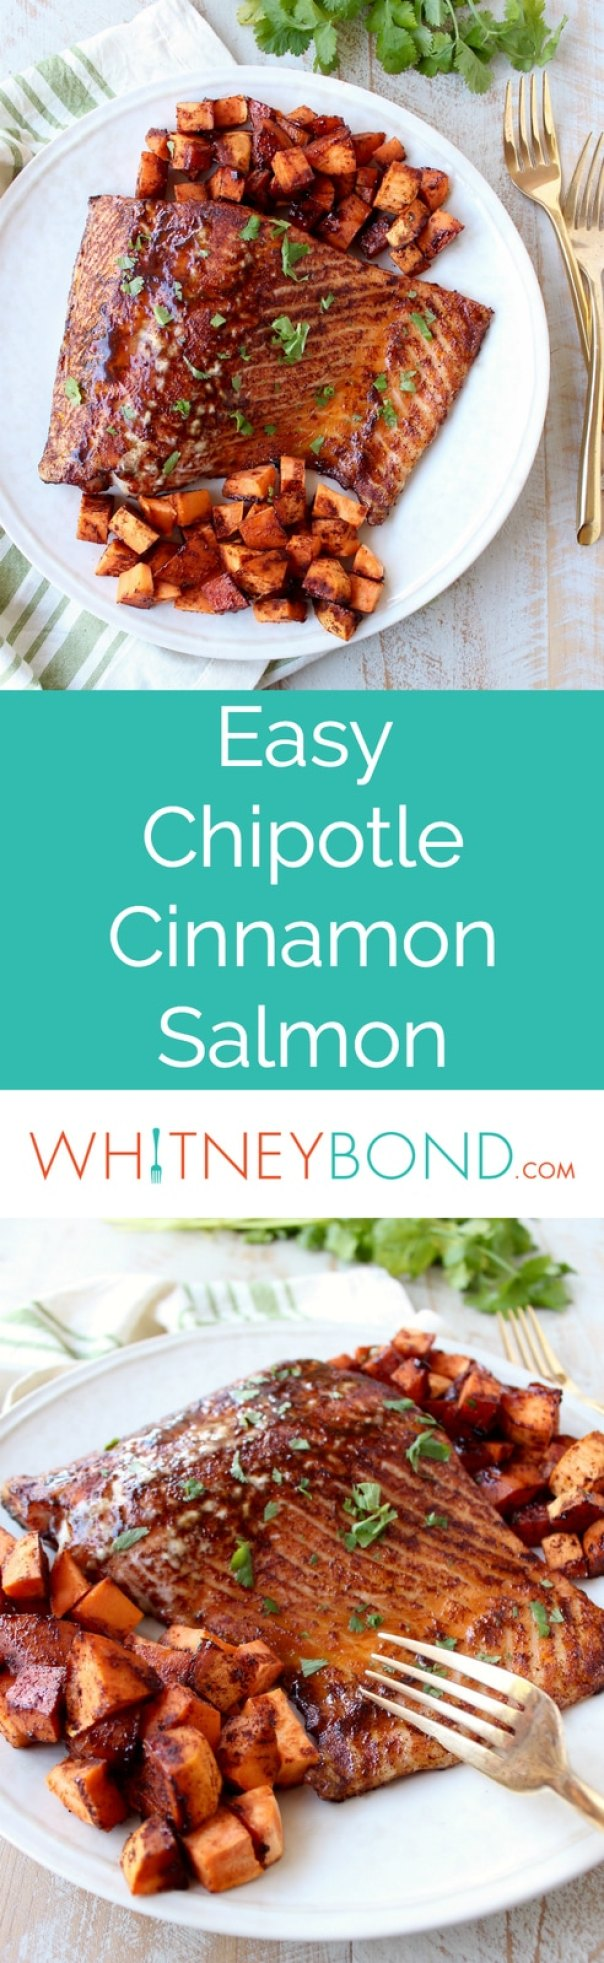 Baked Cinnamon Chipotle Salmon is a healthy, gluten free recipe that has the perfect balance of sweet and spicy, and is made in only 29 minutes for a quick and easy meal!